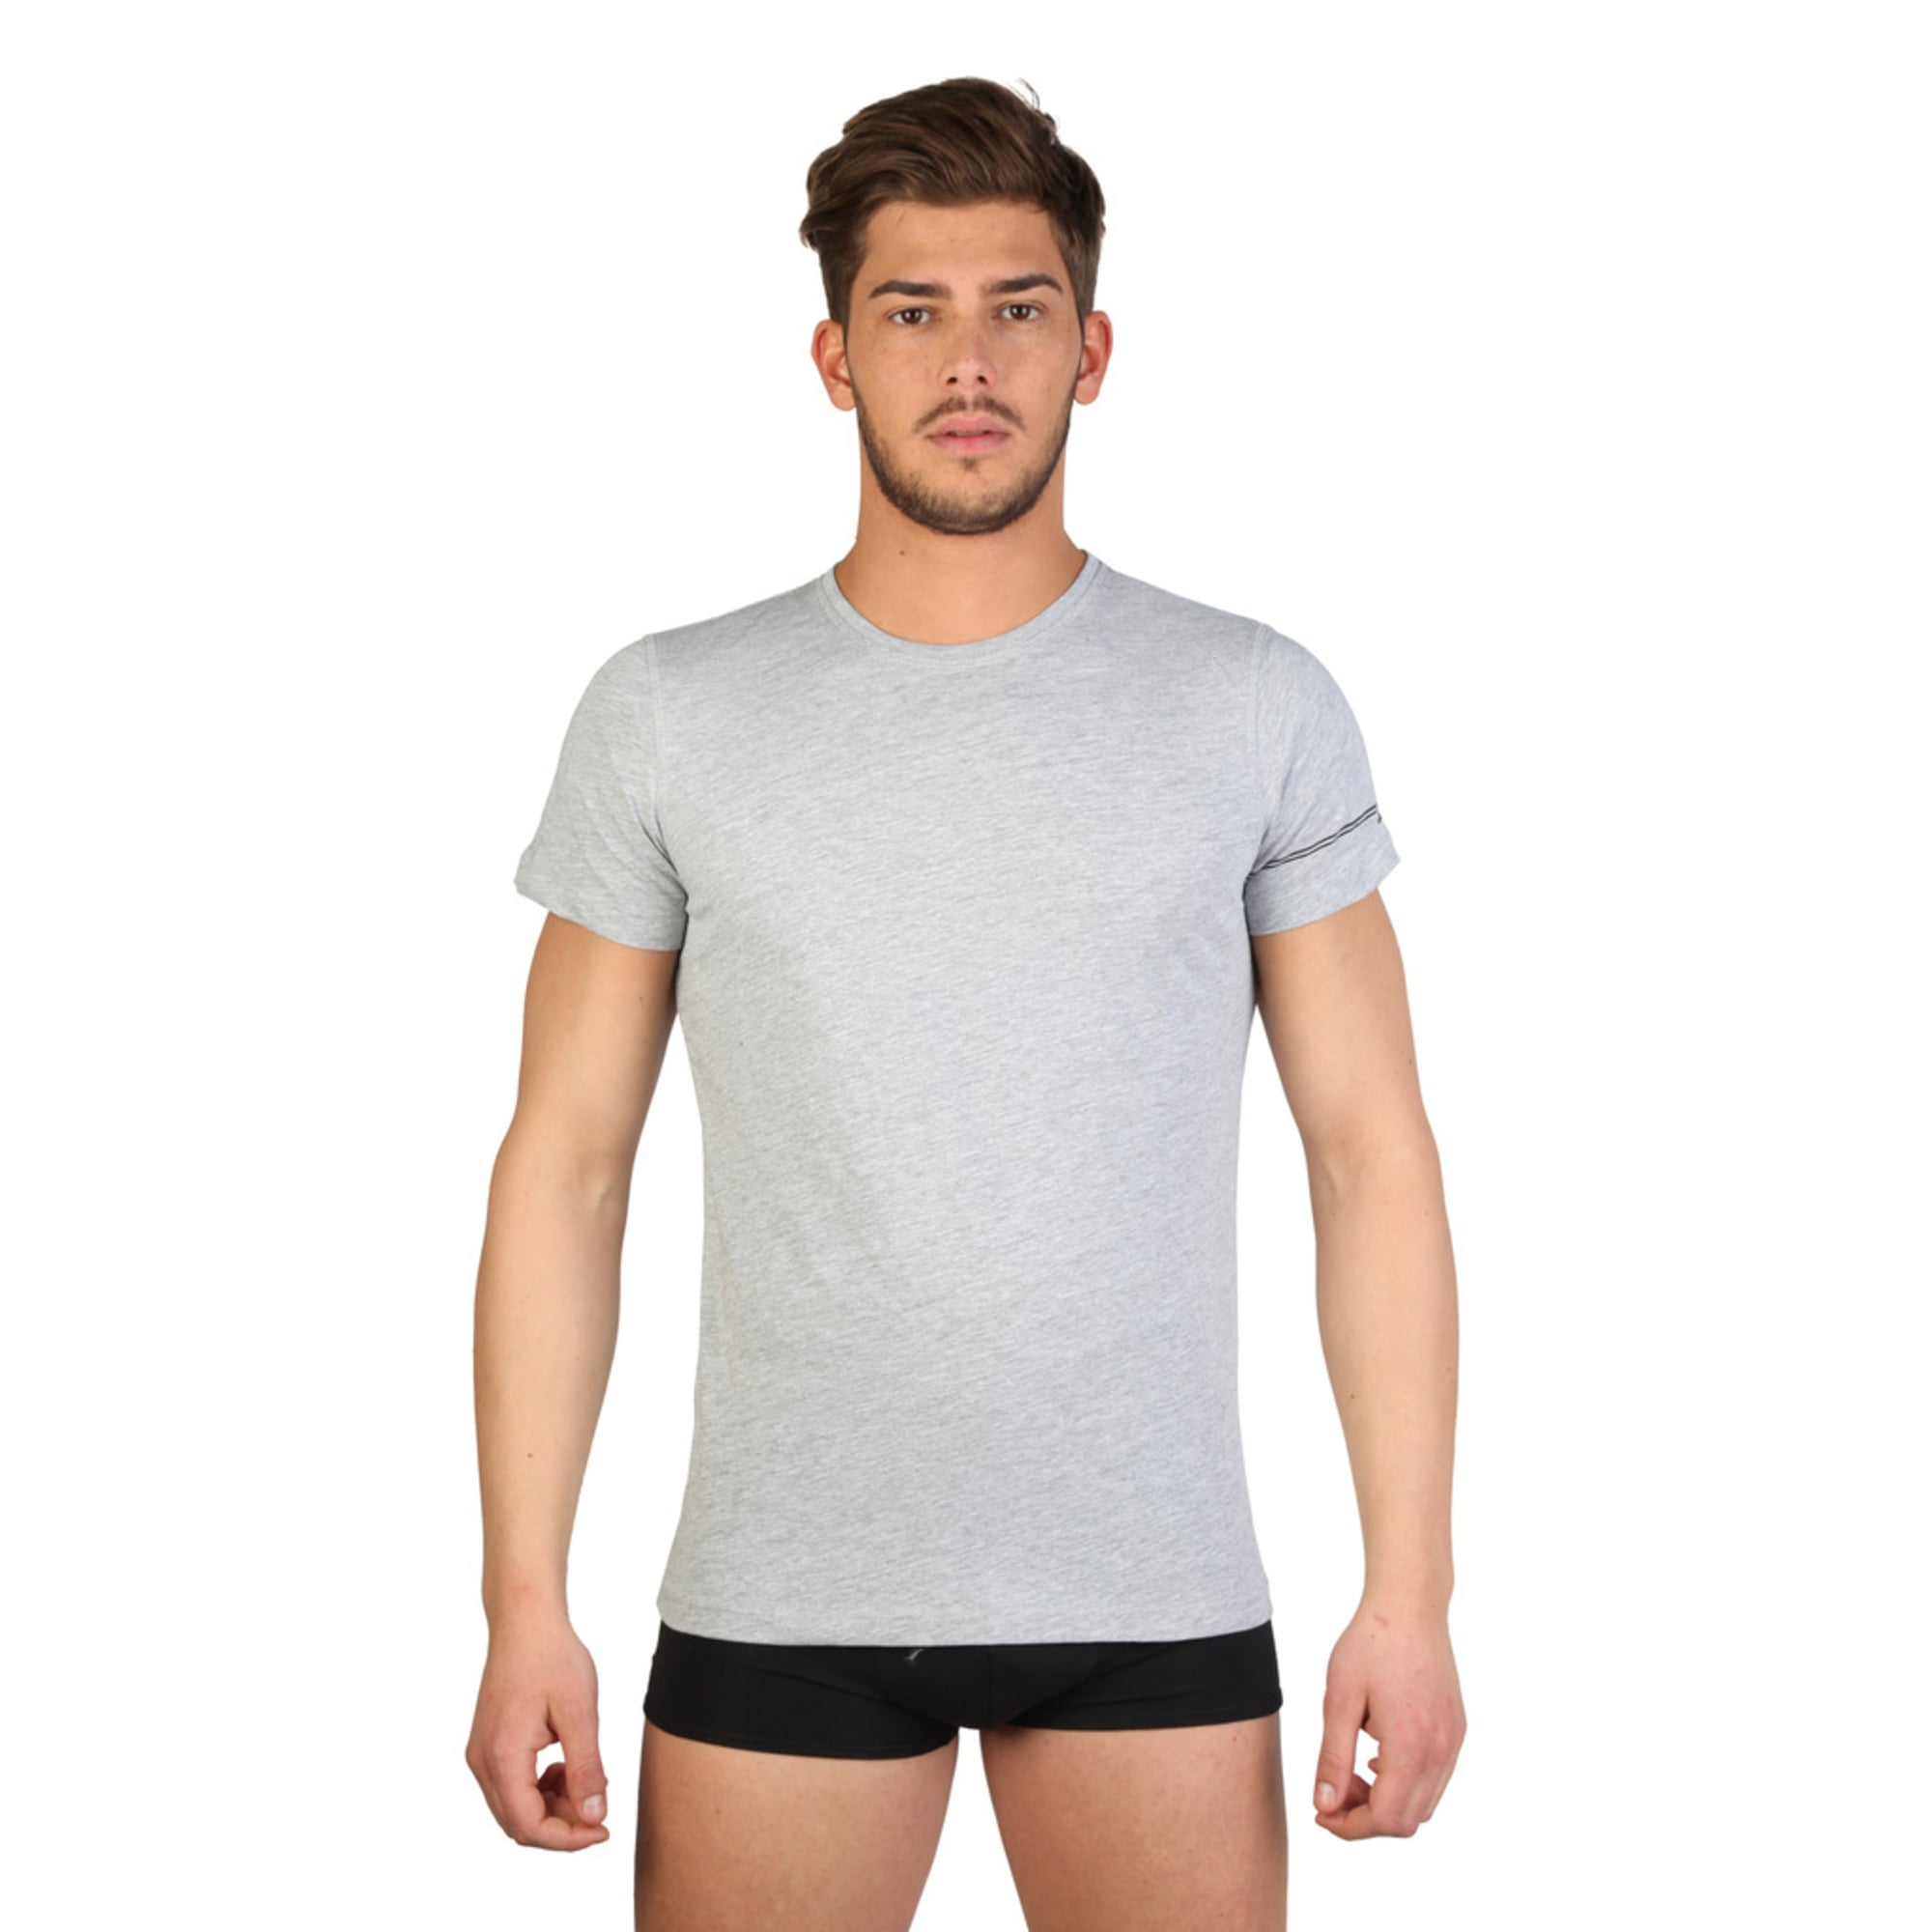 T-shirt DATCH Gray, charcoal